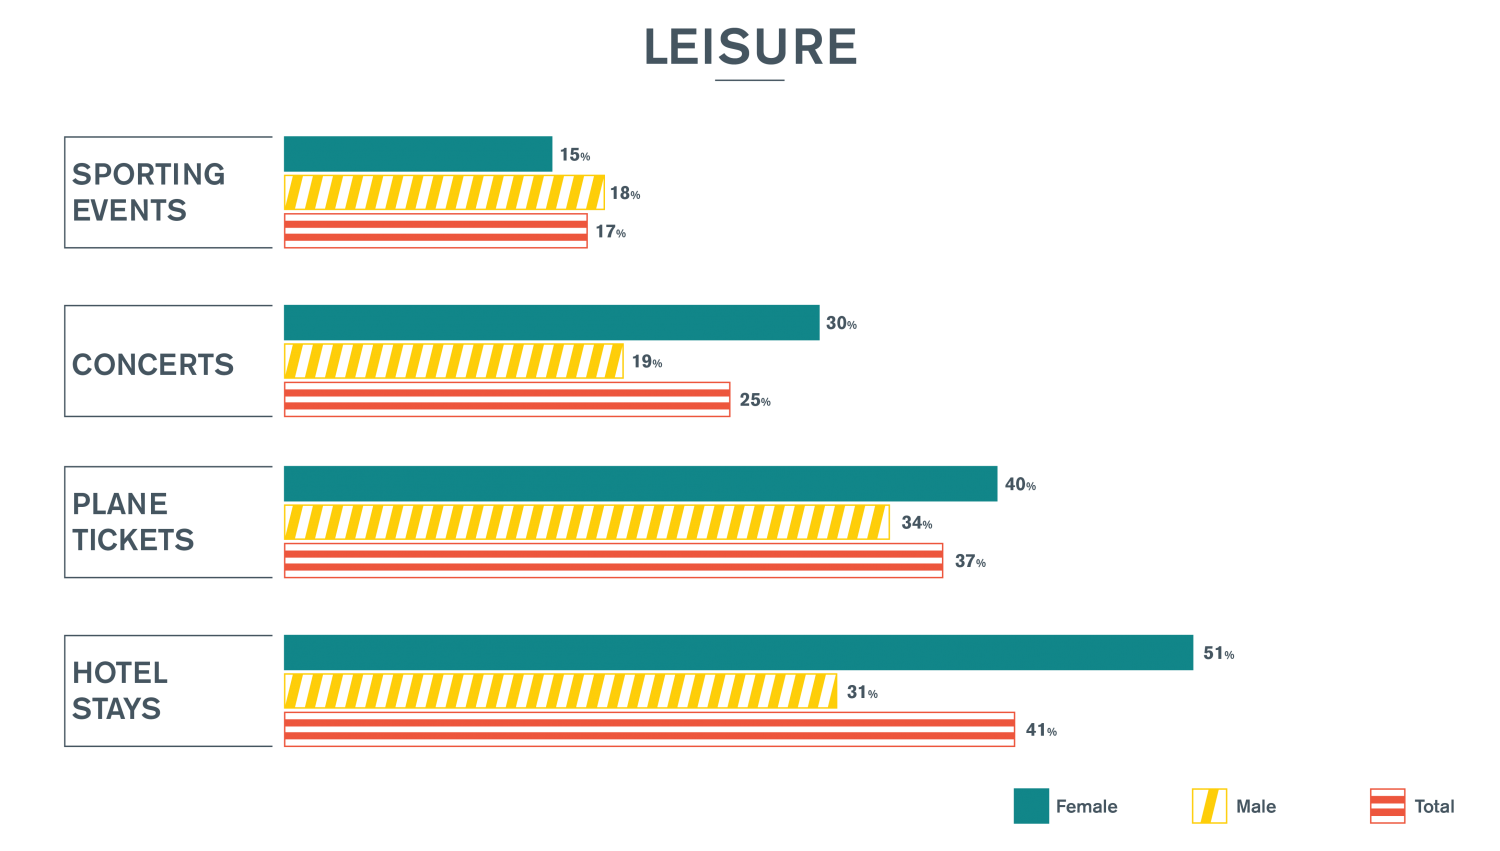 Spending Time Research Leisure Chart